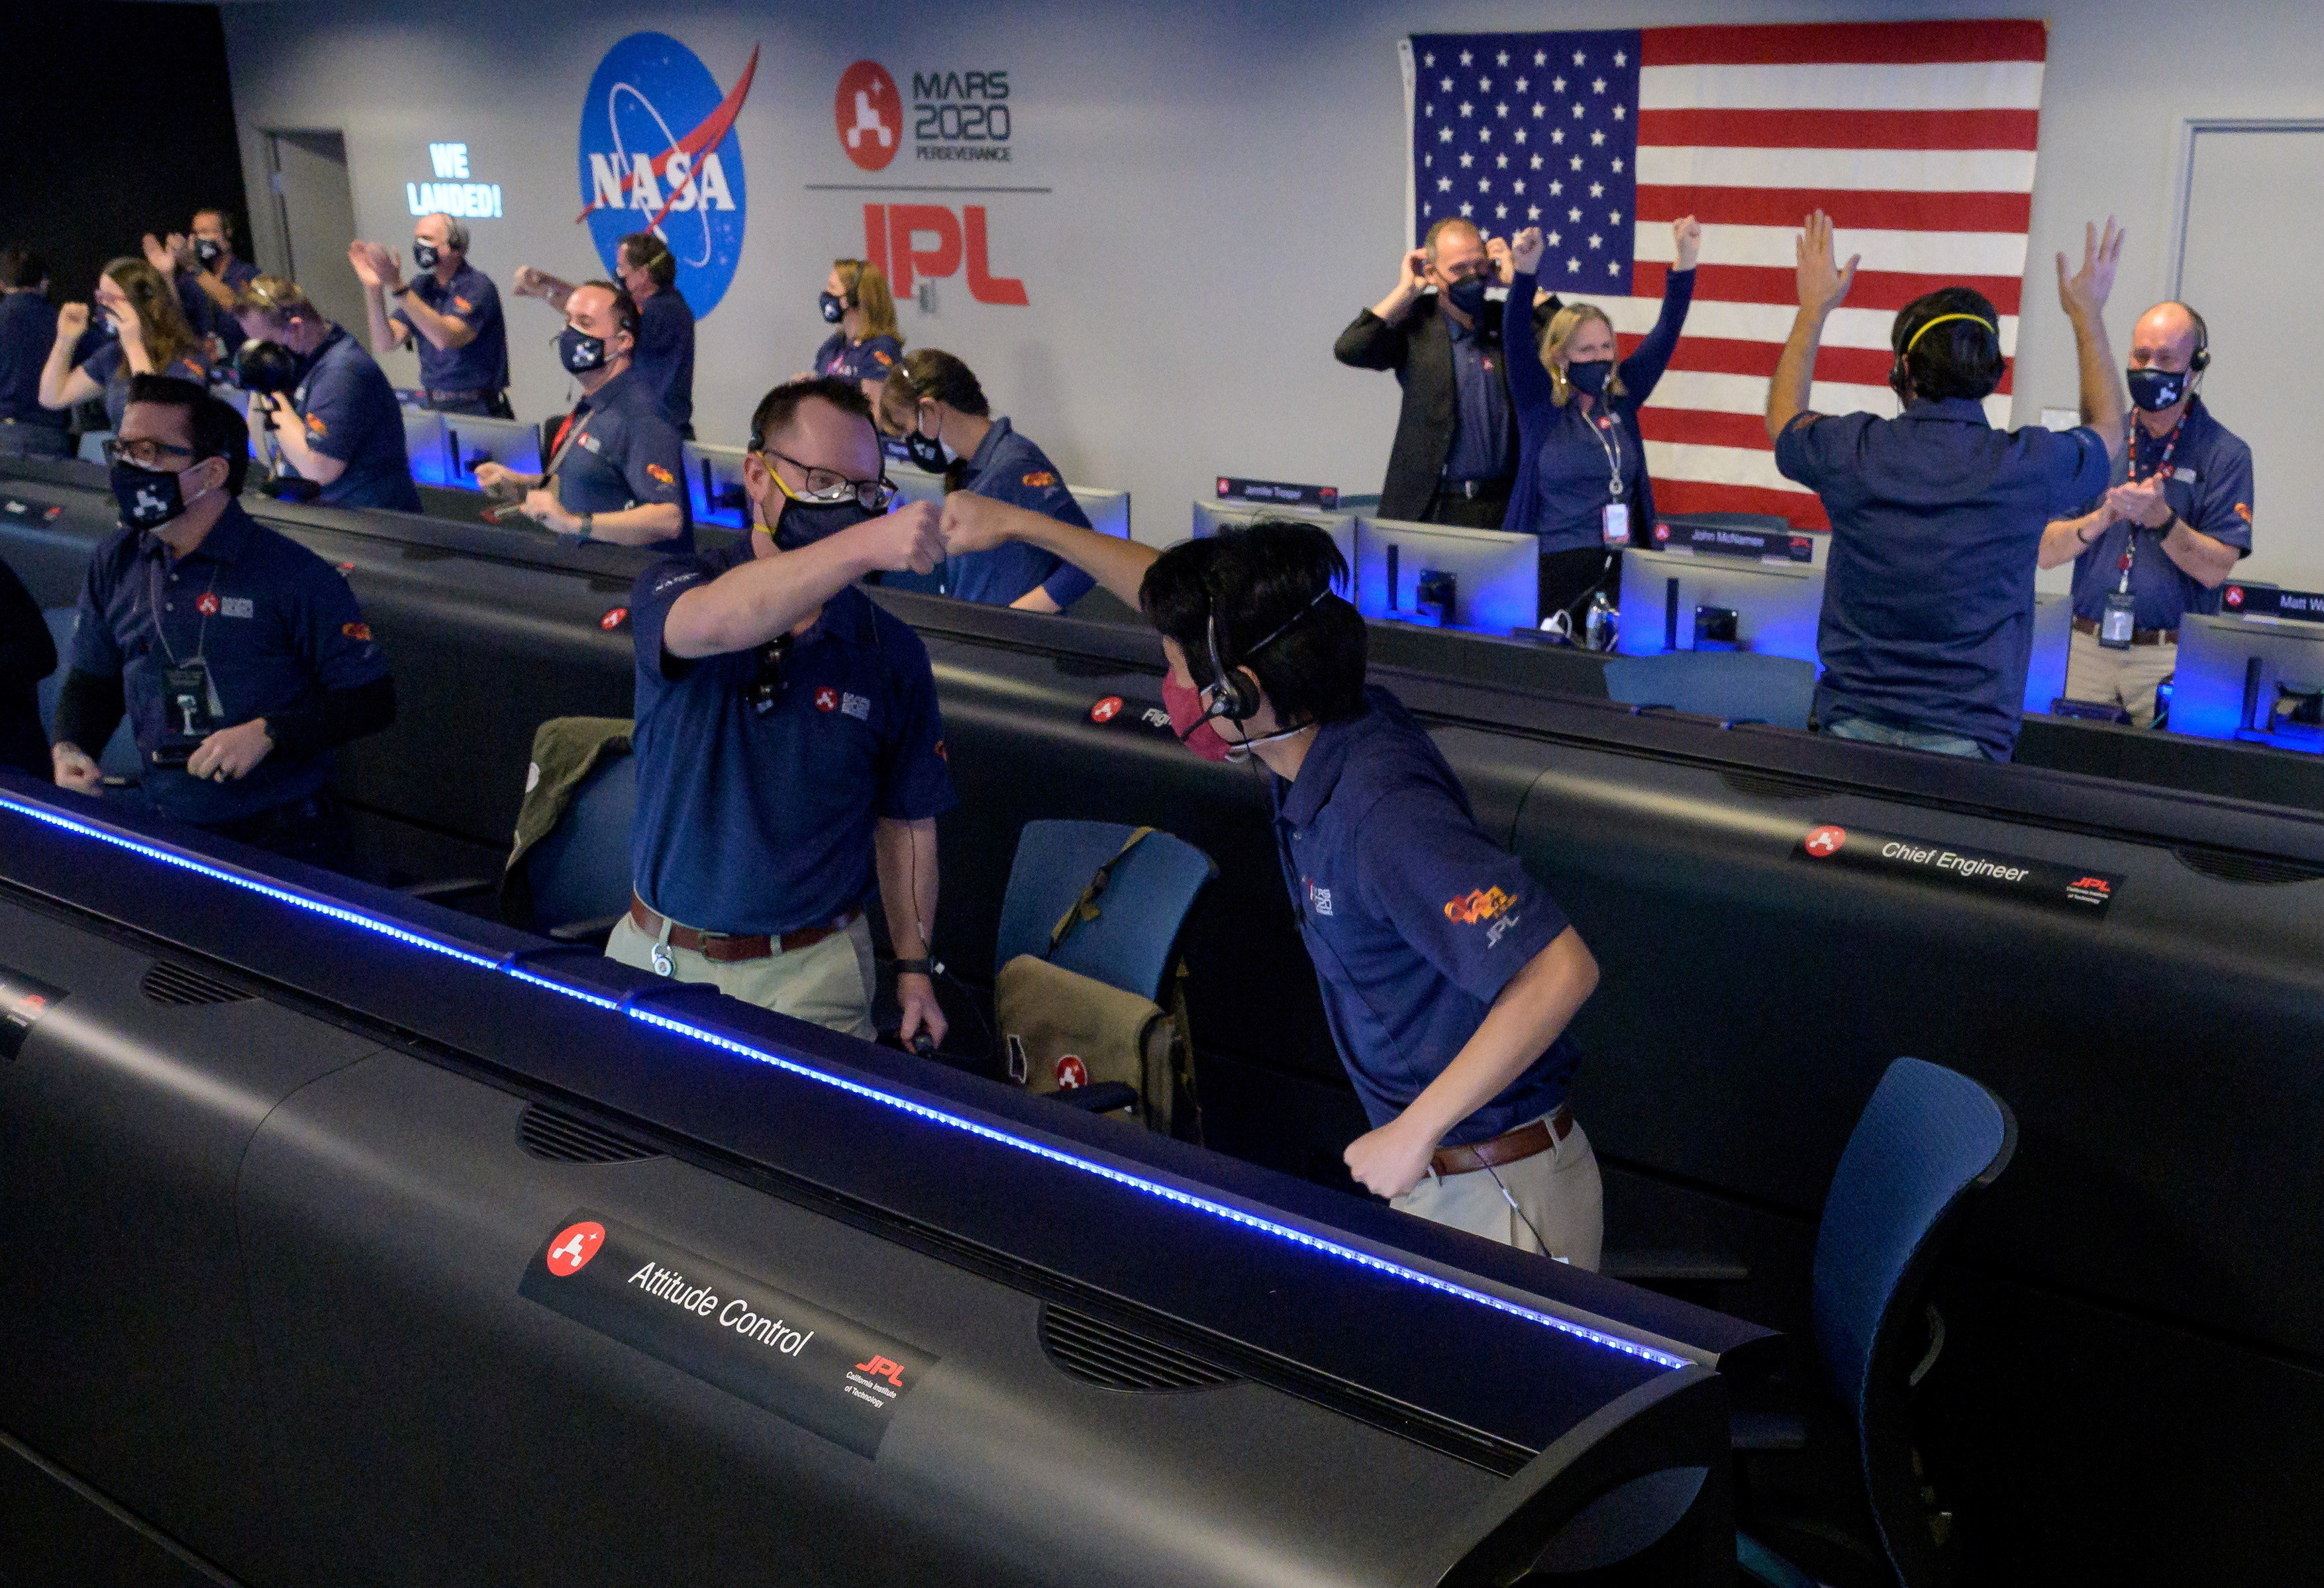 Members of NASA's Perseverance rover team react in mission control after receiving confirmation the spacecraft successfully touched down on Mars, at NASA's Jet Propulsion Laboratory in Pasadena, California, U.S. February 18, 2021. Picture taken February 18, 2021.  NASA/Bill Ingalls/Handout via REUTERS. MANDATORY CREDIT. THIS IMAGE HAS BEEN SUPPLIED BY A THIRD PARTY. - RC2WVL9JKDBA